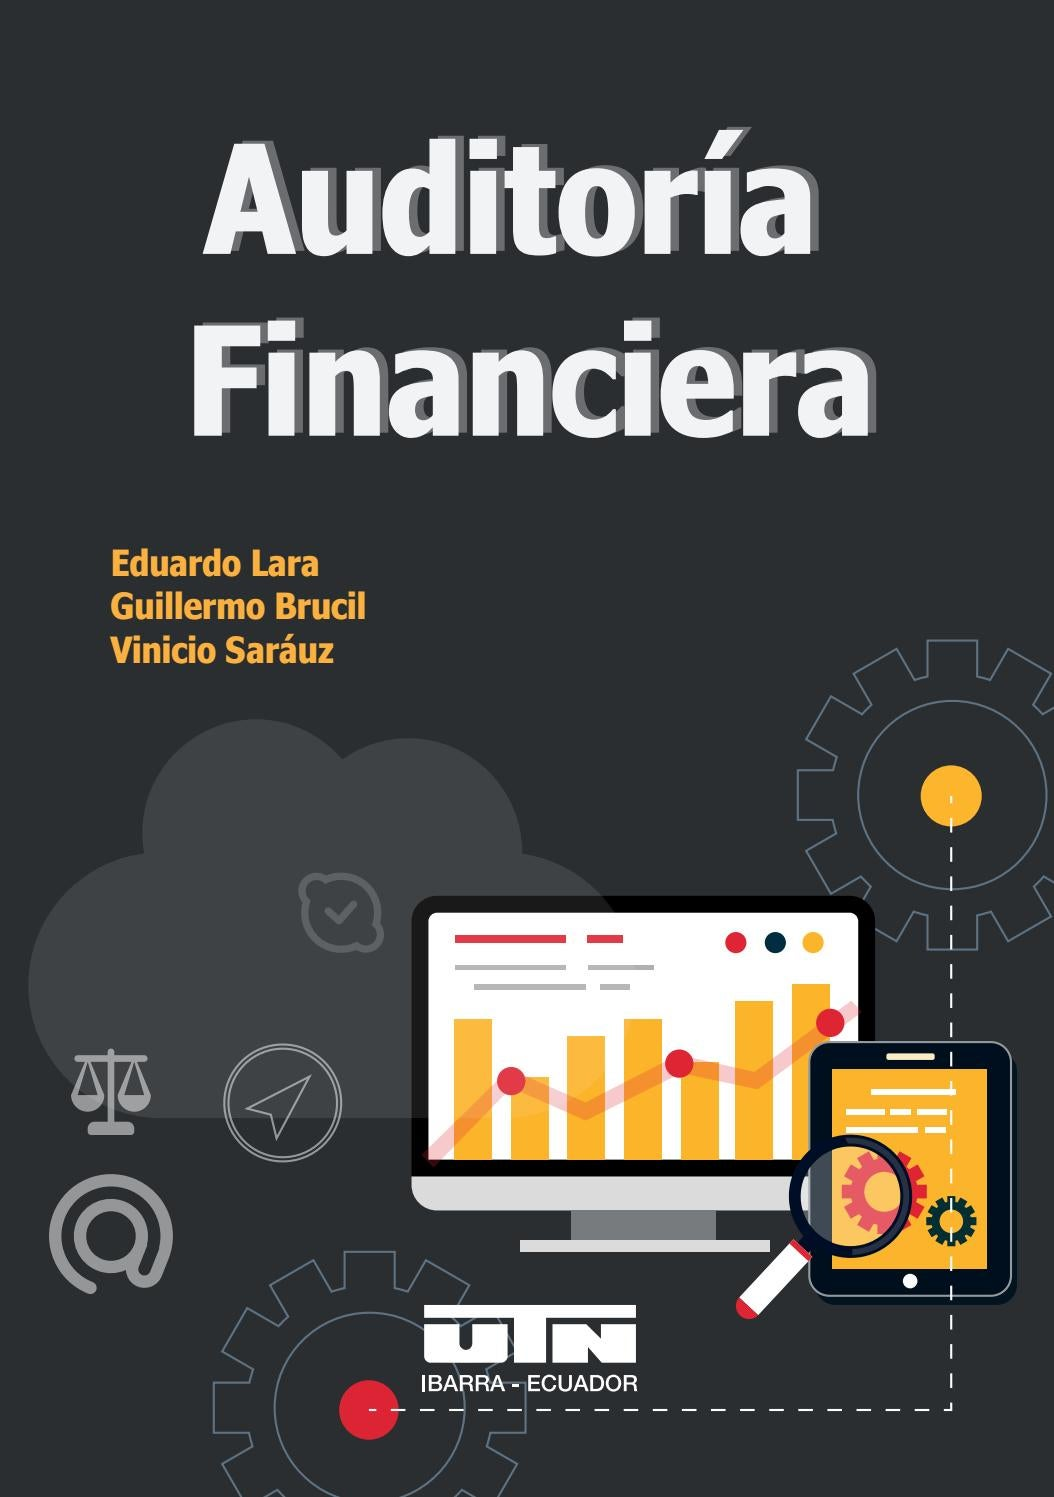 Auditoría Fincanciera By Editorial Universidad Técnica Del